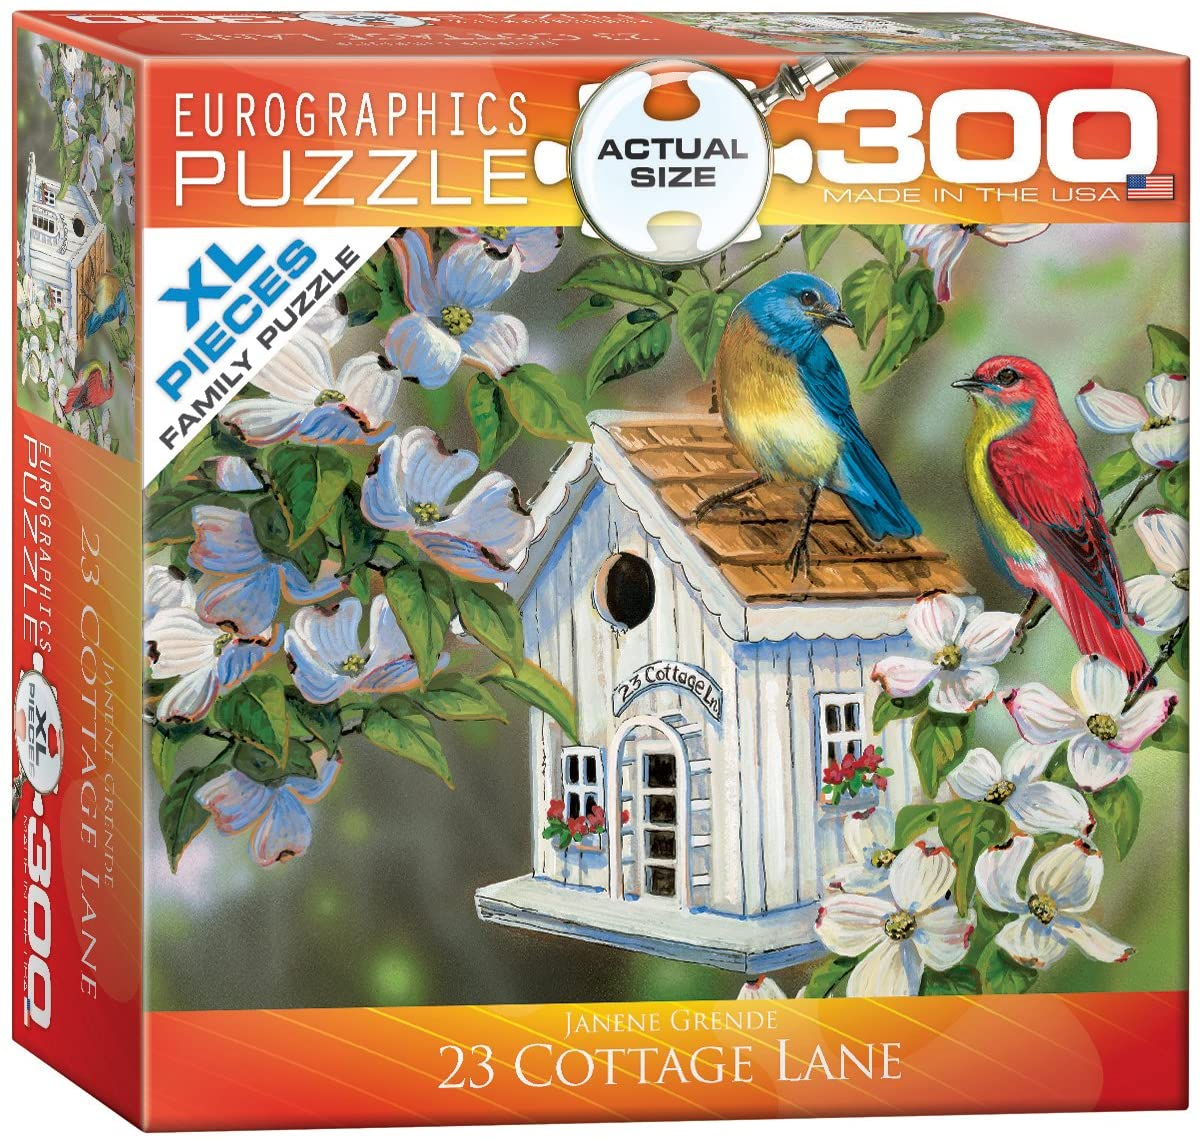 EuroGraphics 23 Cottage Lane Puzzle (300-Piece)